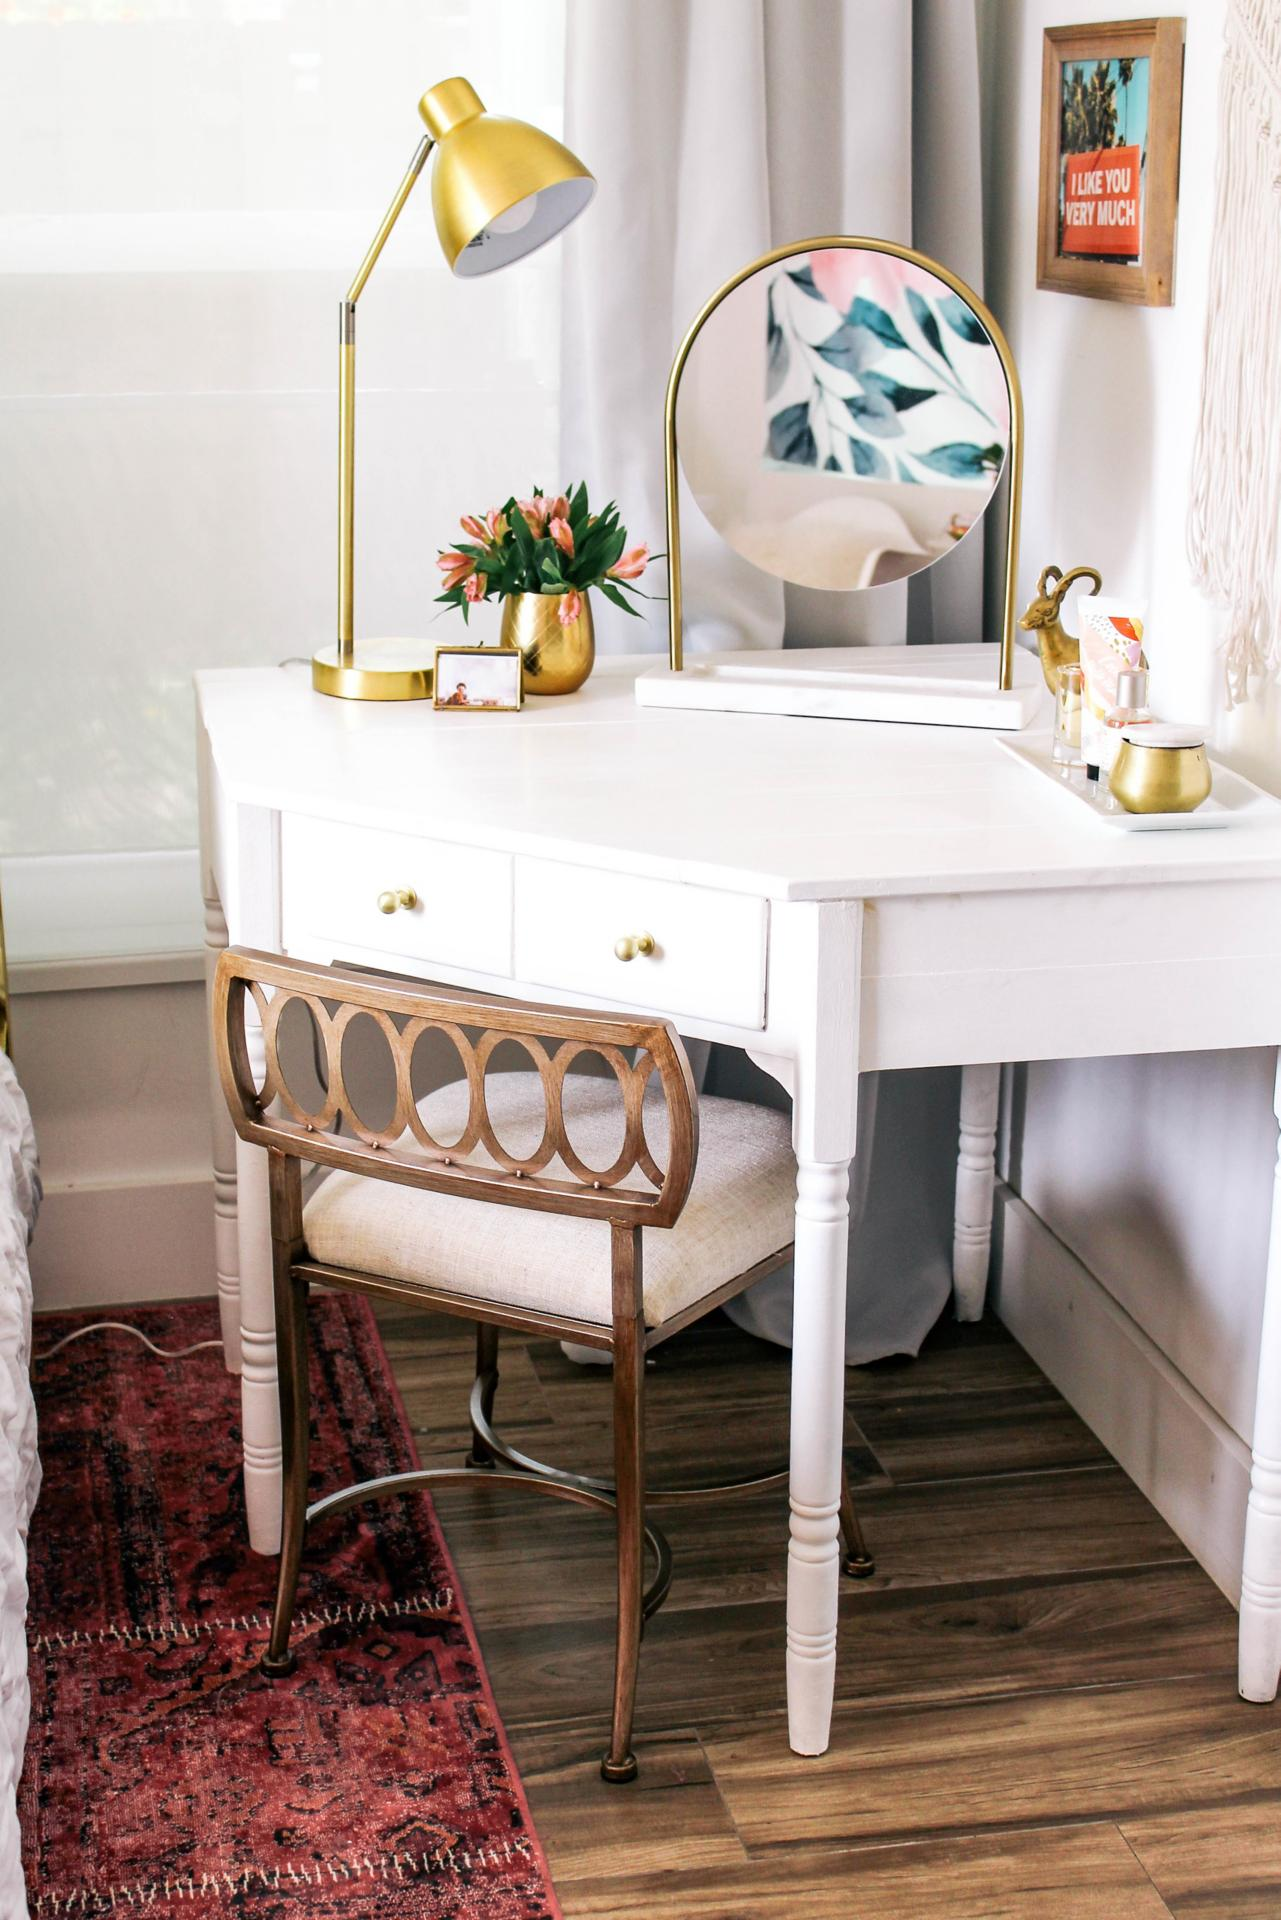 style insider inspiration room makeover image 02